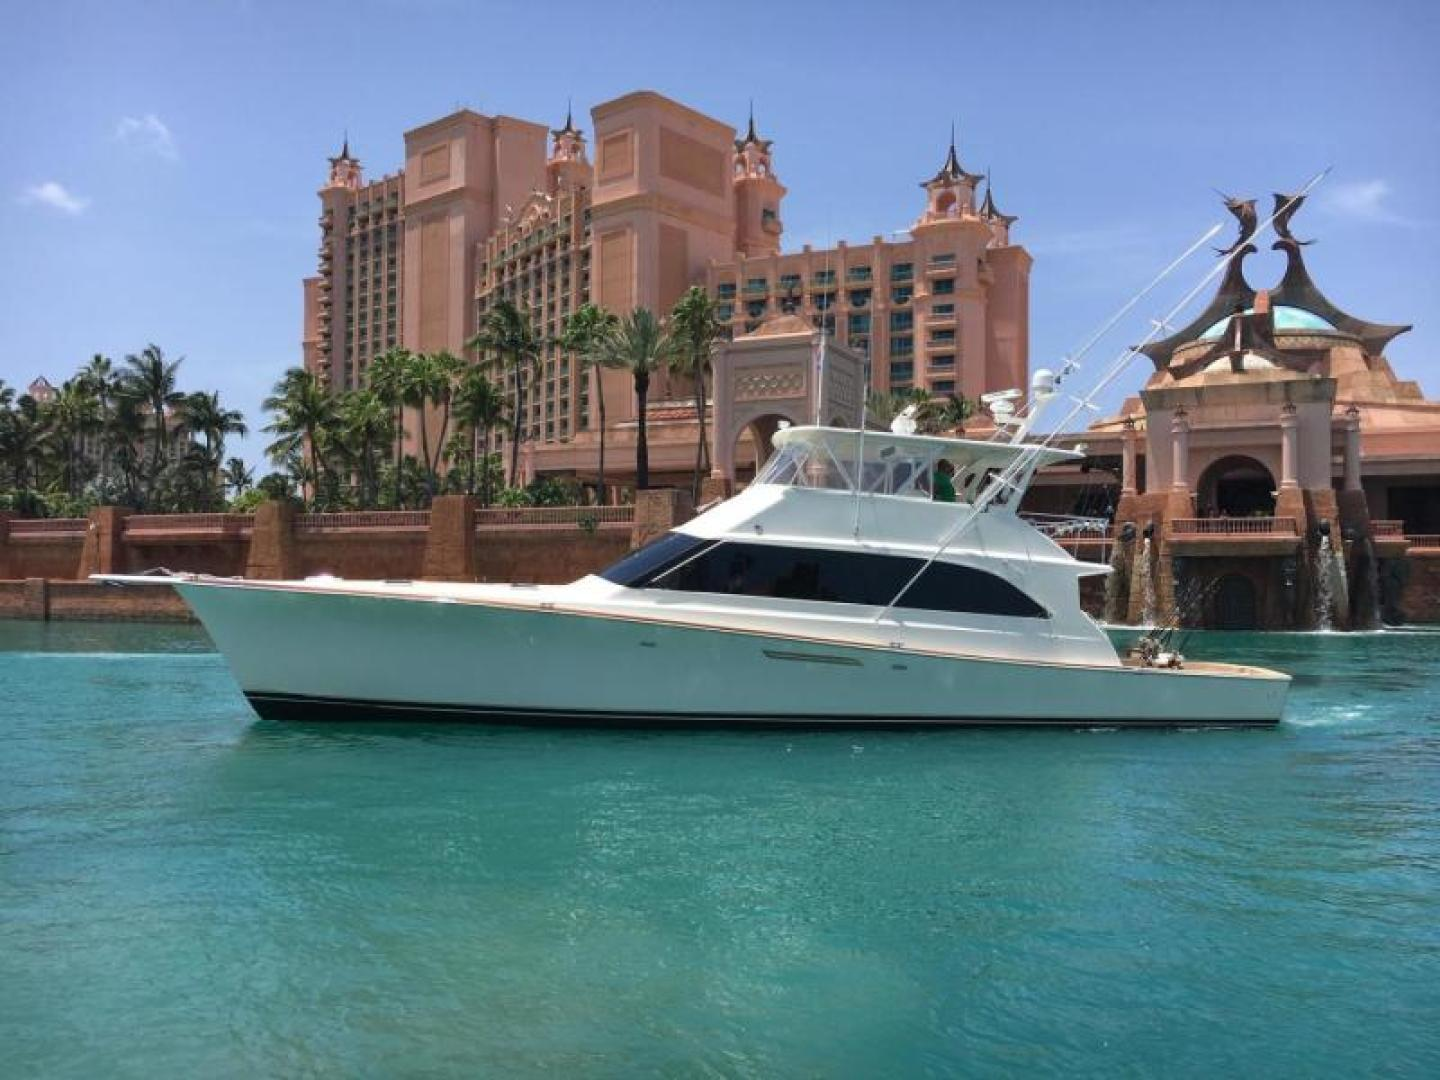 66' Ocean Yachts 1993 Convertible DONE DEAL